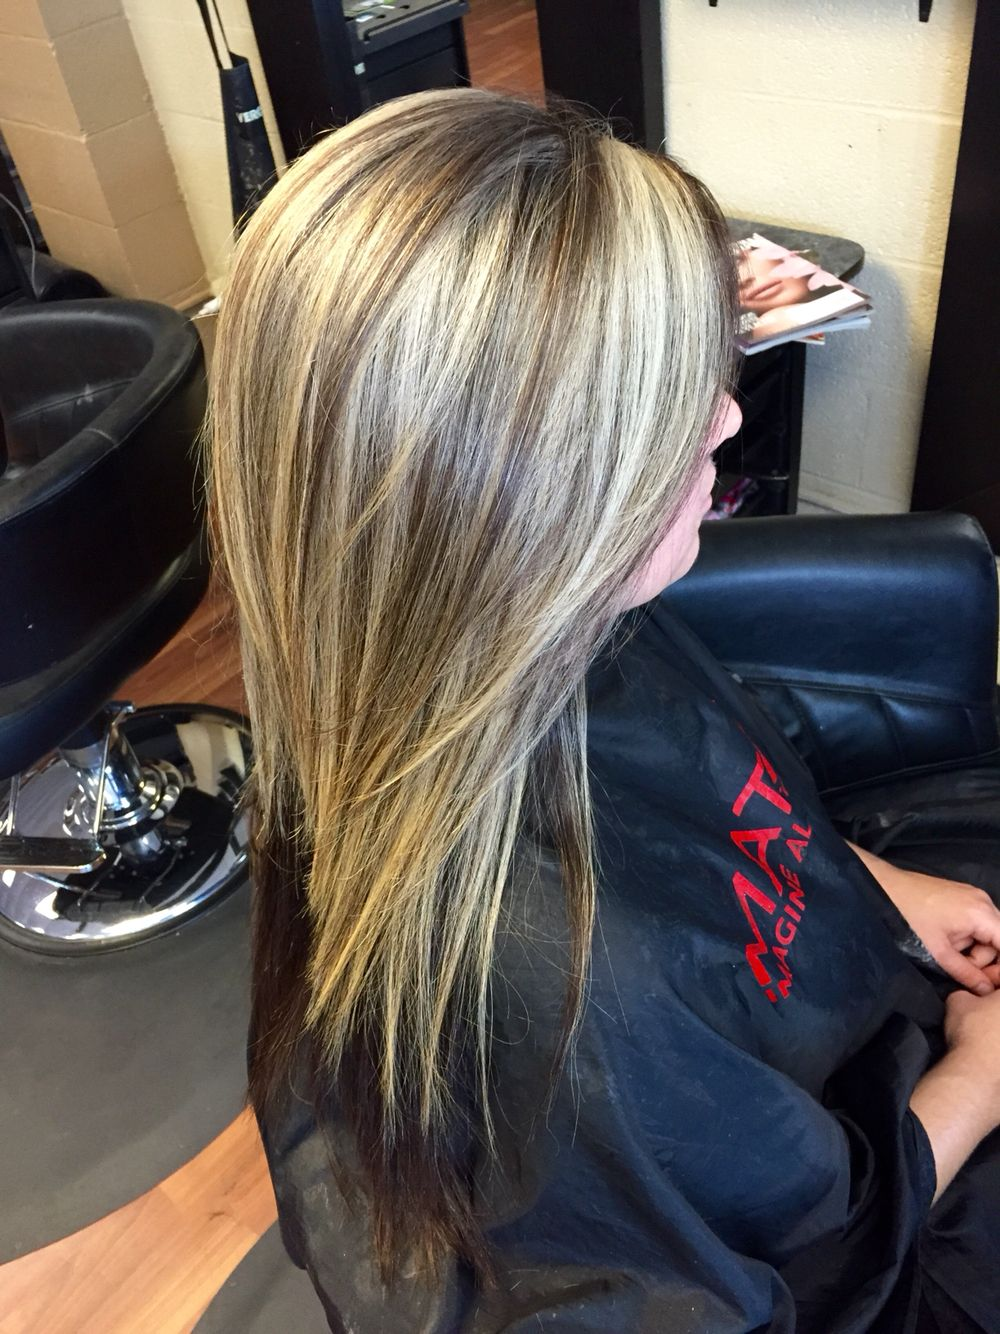 Heavy Blonde Highlight With A Golden Brown Base Heavy Blonde Highlights Brown Hair With Blonde Highlights Beauty Hair Makeup